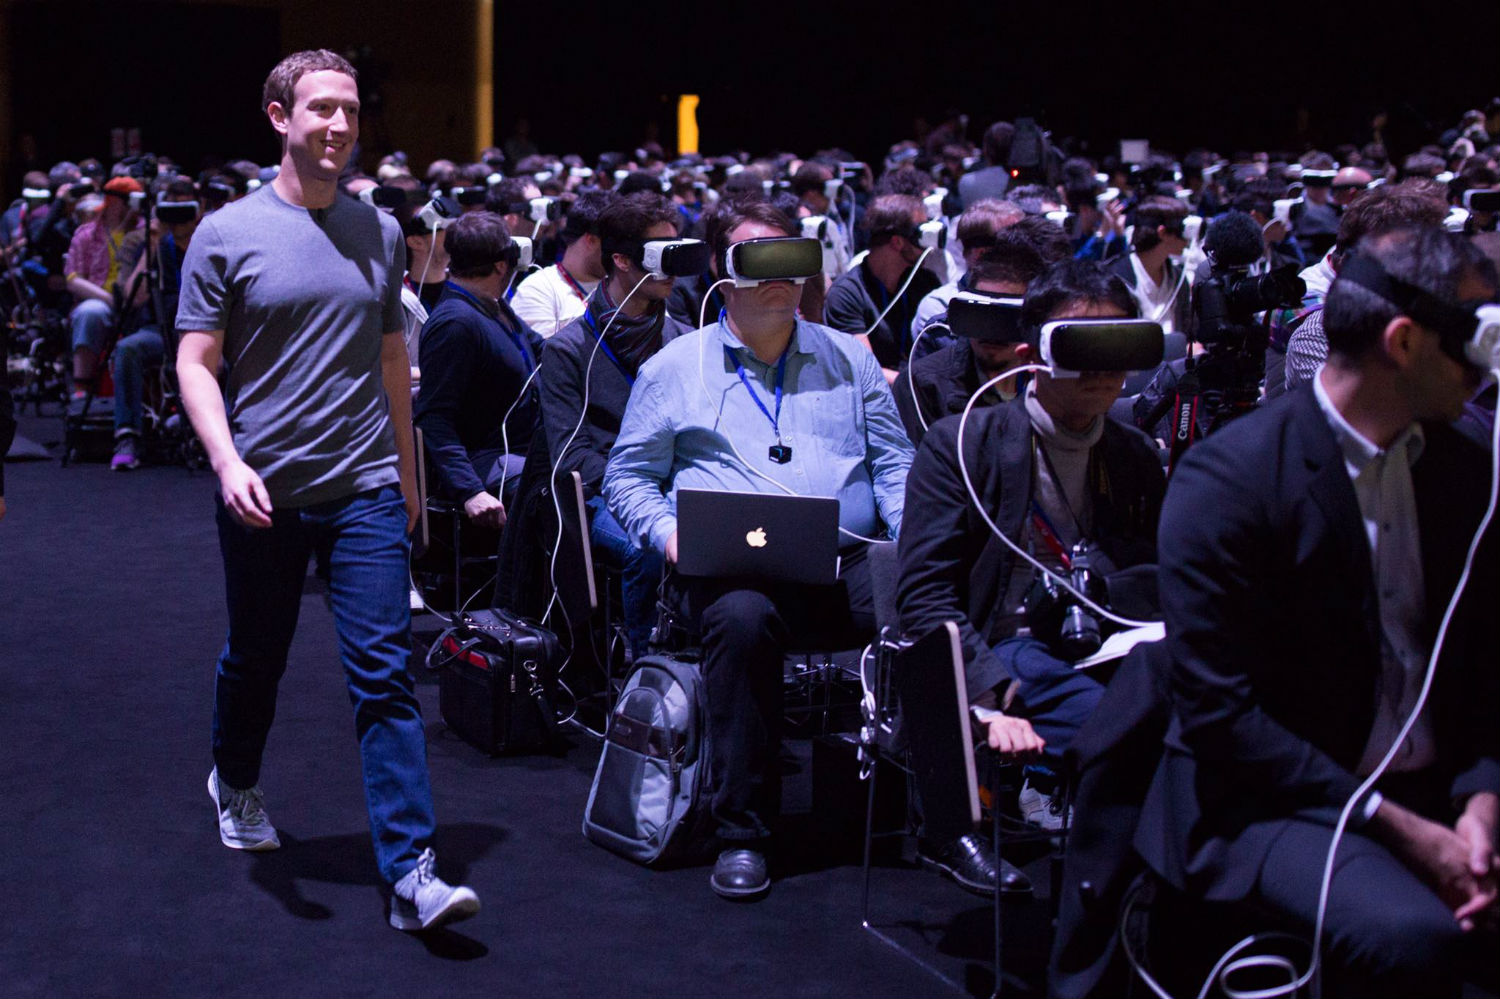 Mark Zuckerberg In ZeniMax Case: 'Oculus Products Are Based On Oculus Technology'